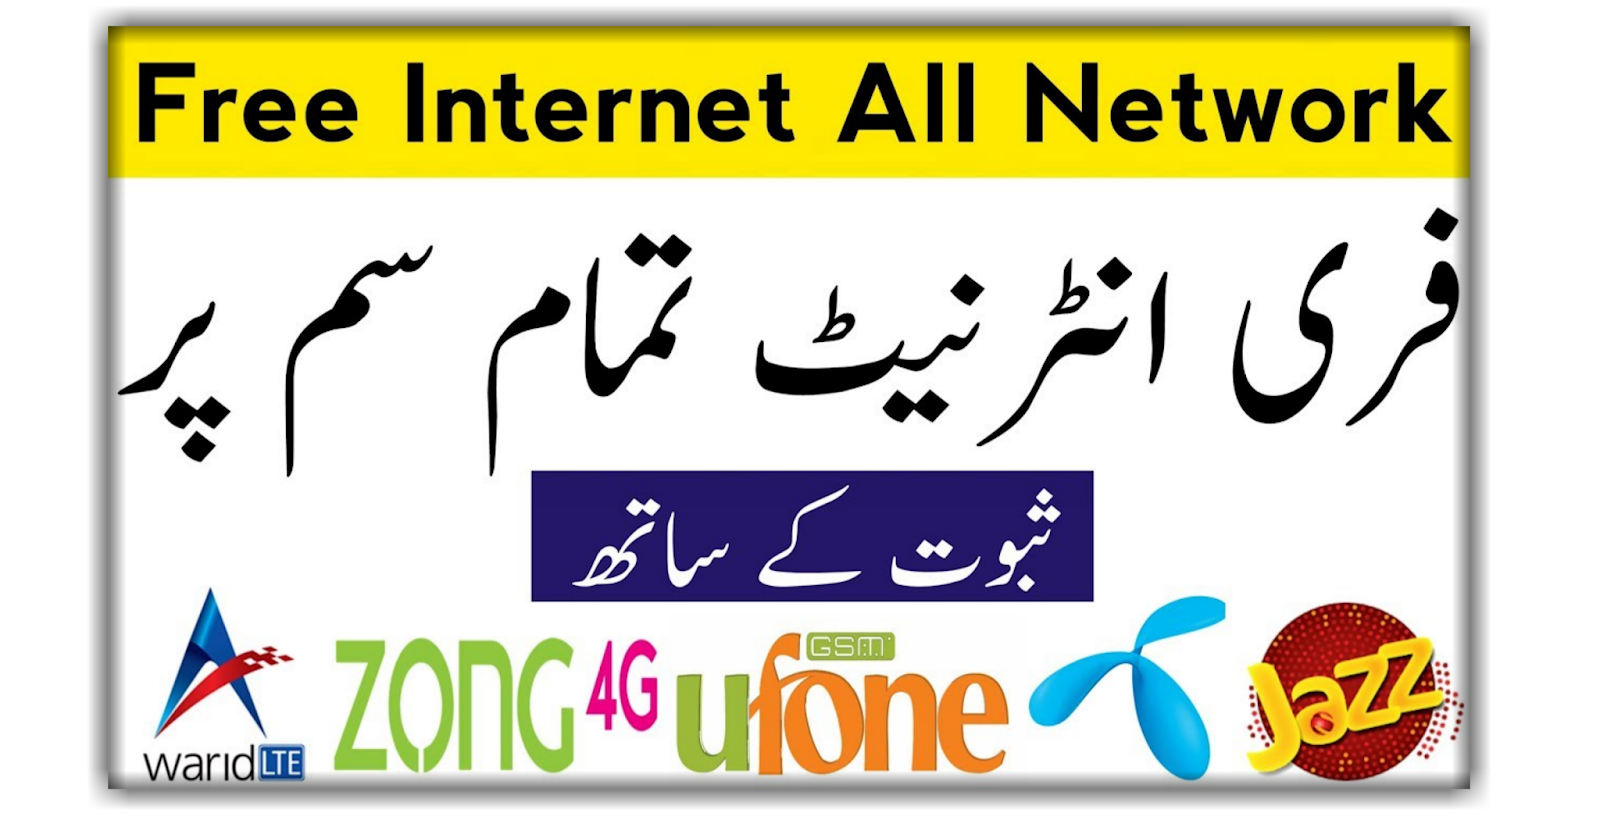 How to use free internet in Pakistan | 100% Working Method | On all